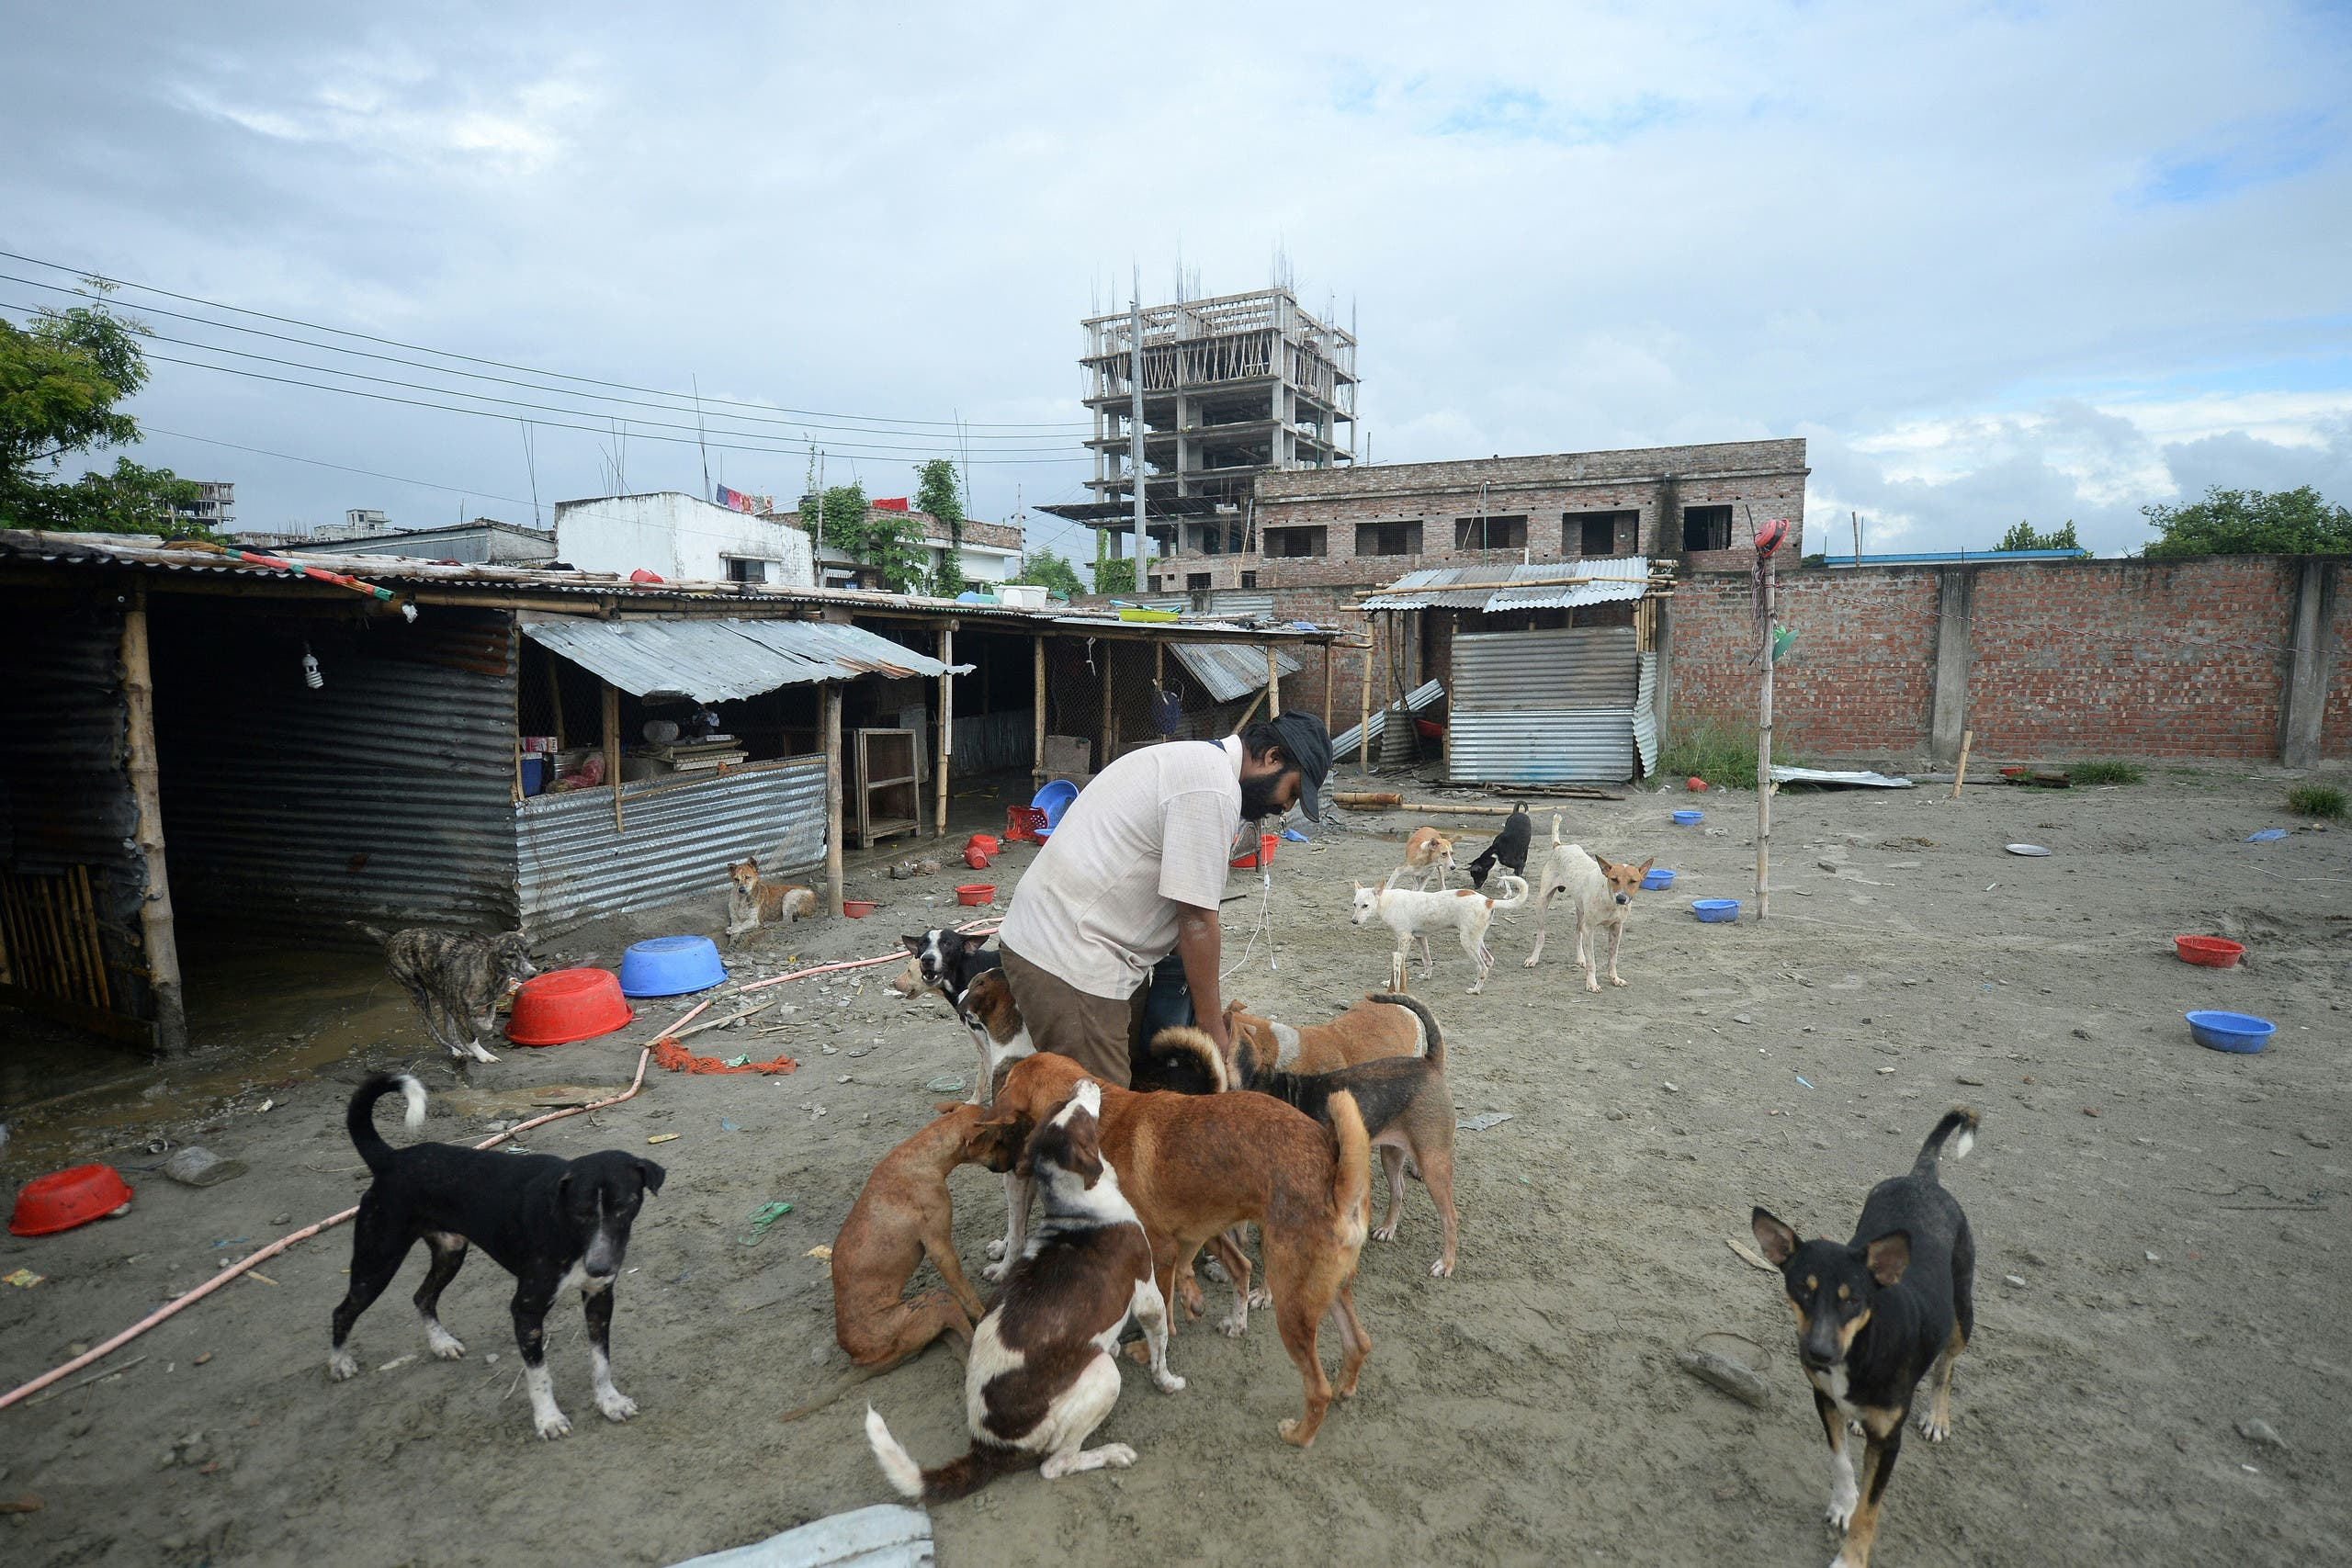 this picture taken on August 16, 2020, Naim Ibne Islam Adi, the head of Bangladesh's largest shelter for stray dogs and cats, feeds dogs at his shelter home in Dhaka. (File photo: AFP)